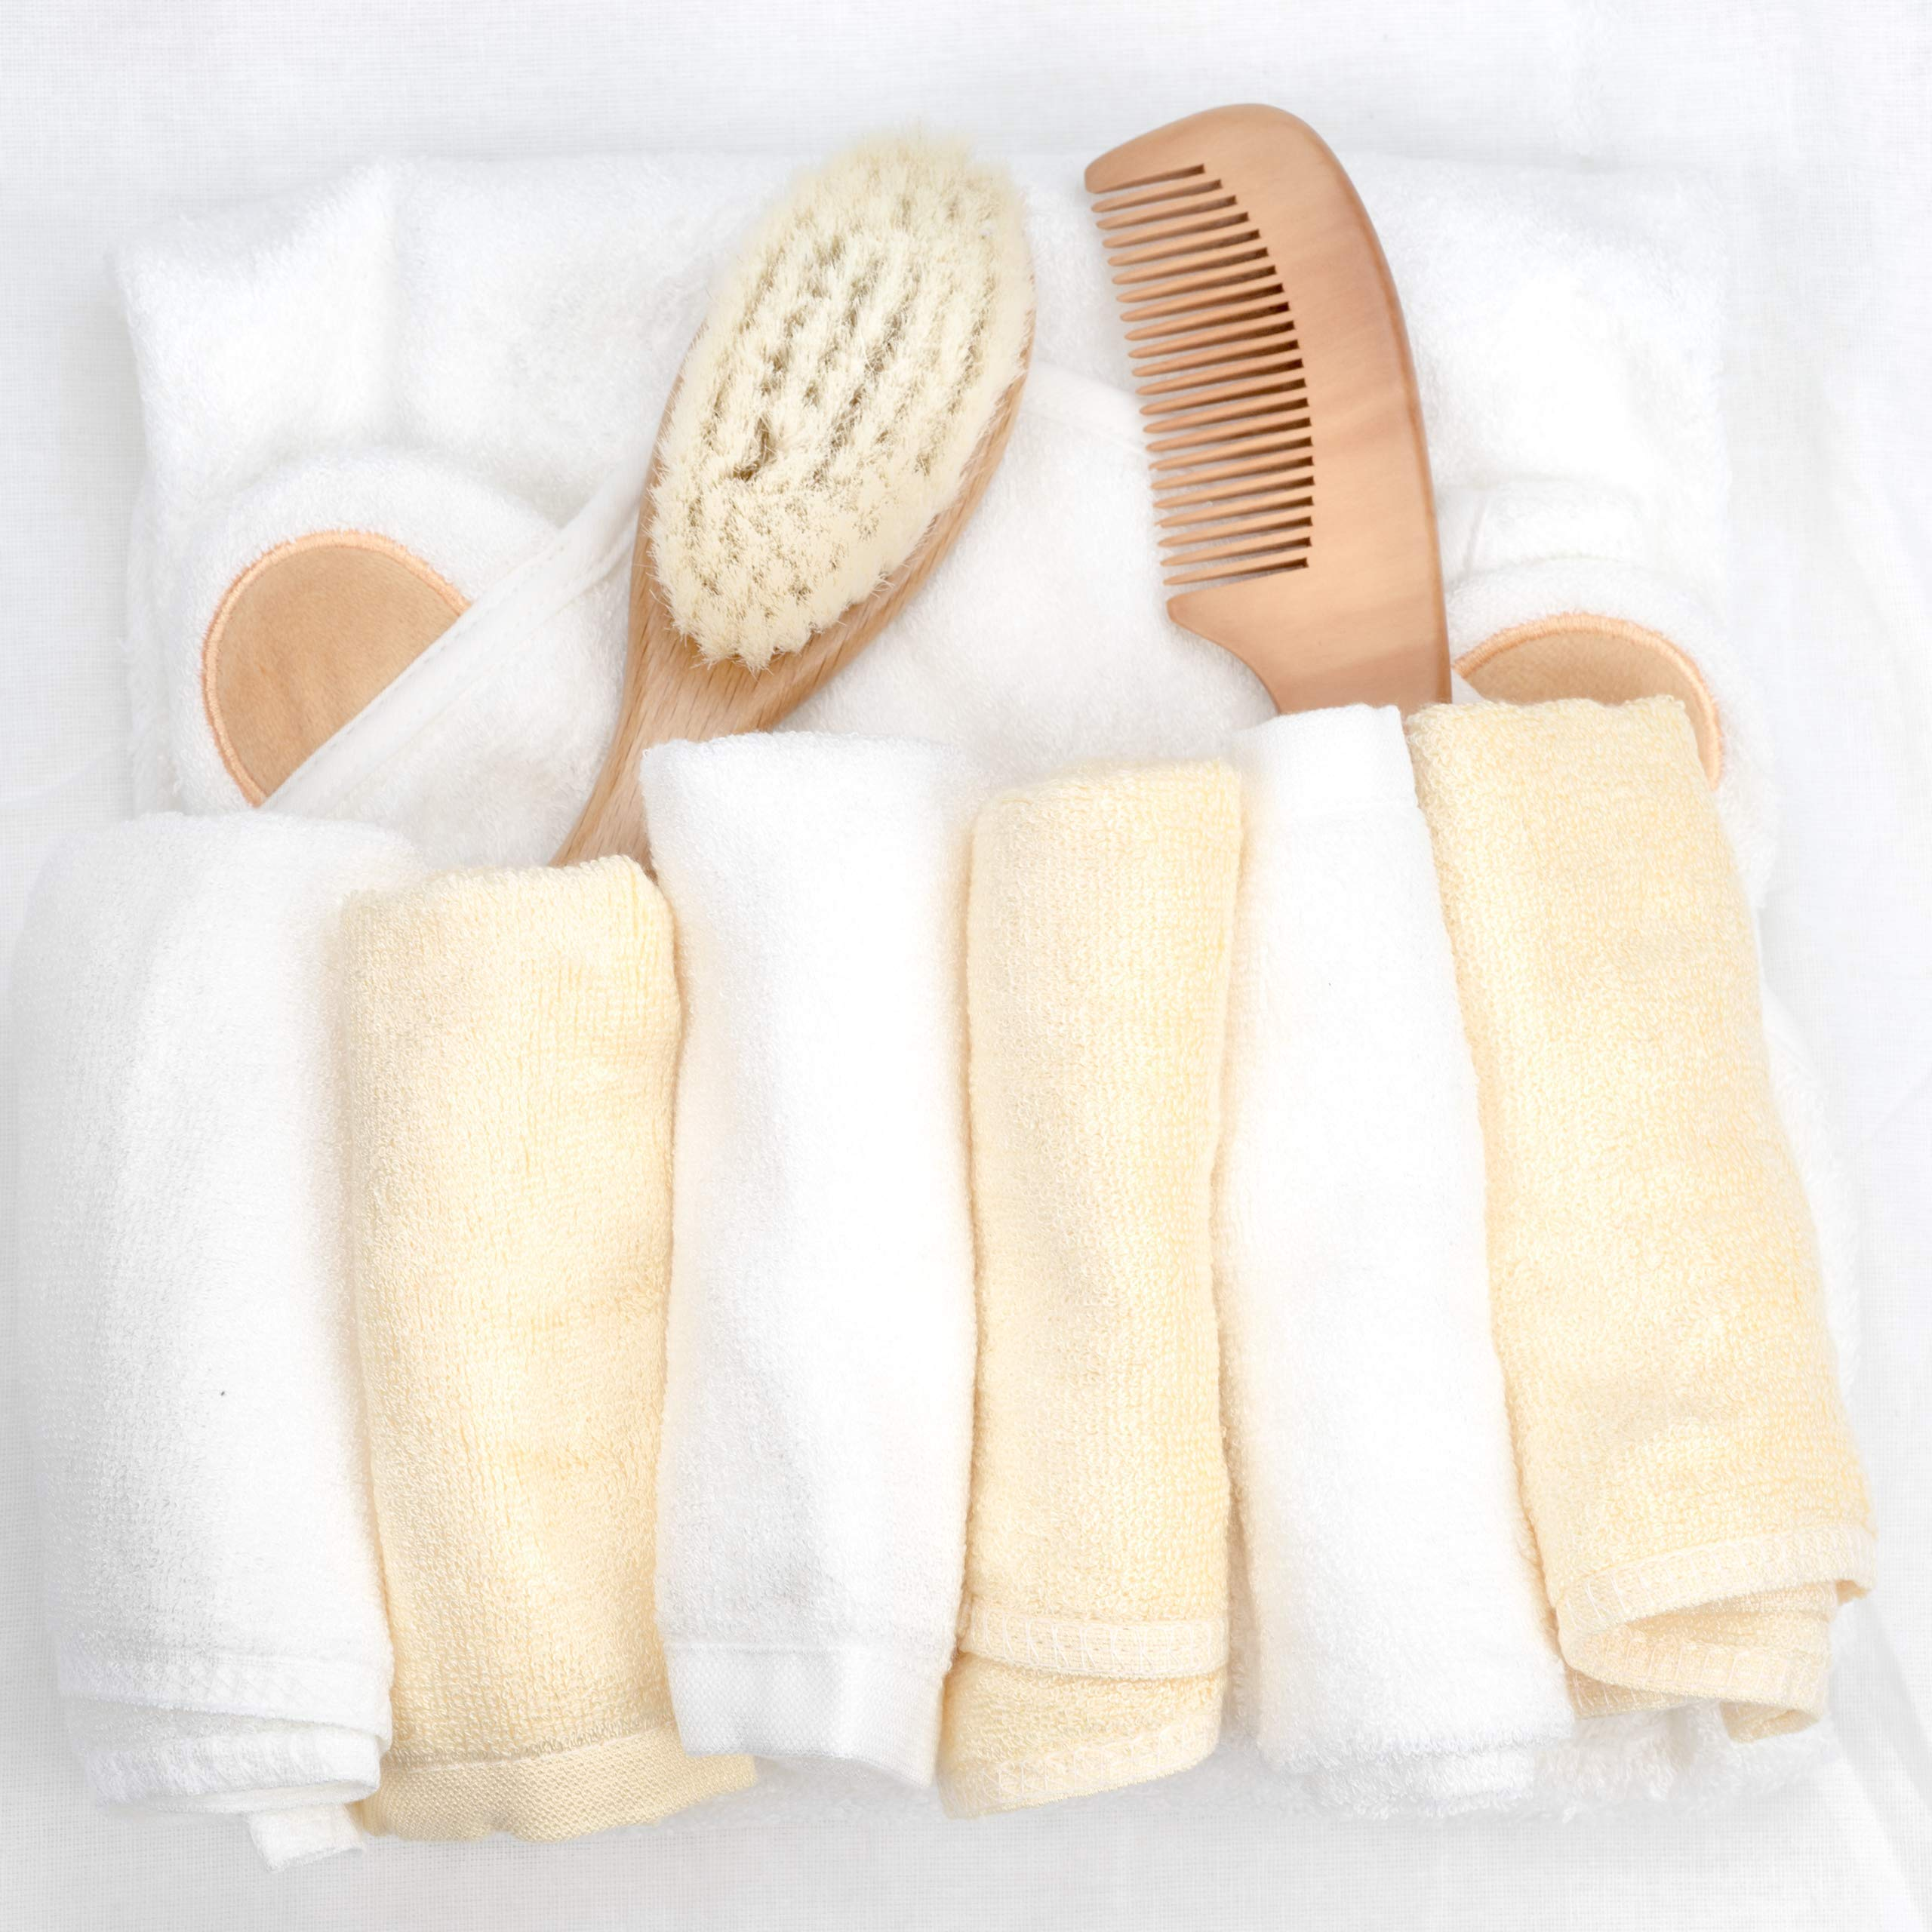 Peak Emporium Bamboo Washcloth & Hooded Towel Set | Organic Bath Time Essentials for Newborns to Toddlers | Extra Thick & Soft Cloth | Bonus Hair Brush Grooming Kit | Ideal Baby Registry Gift by Peak Emporium